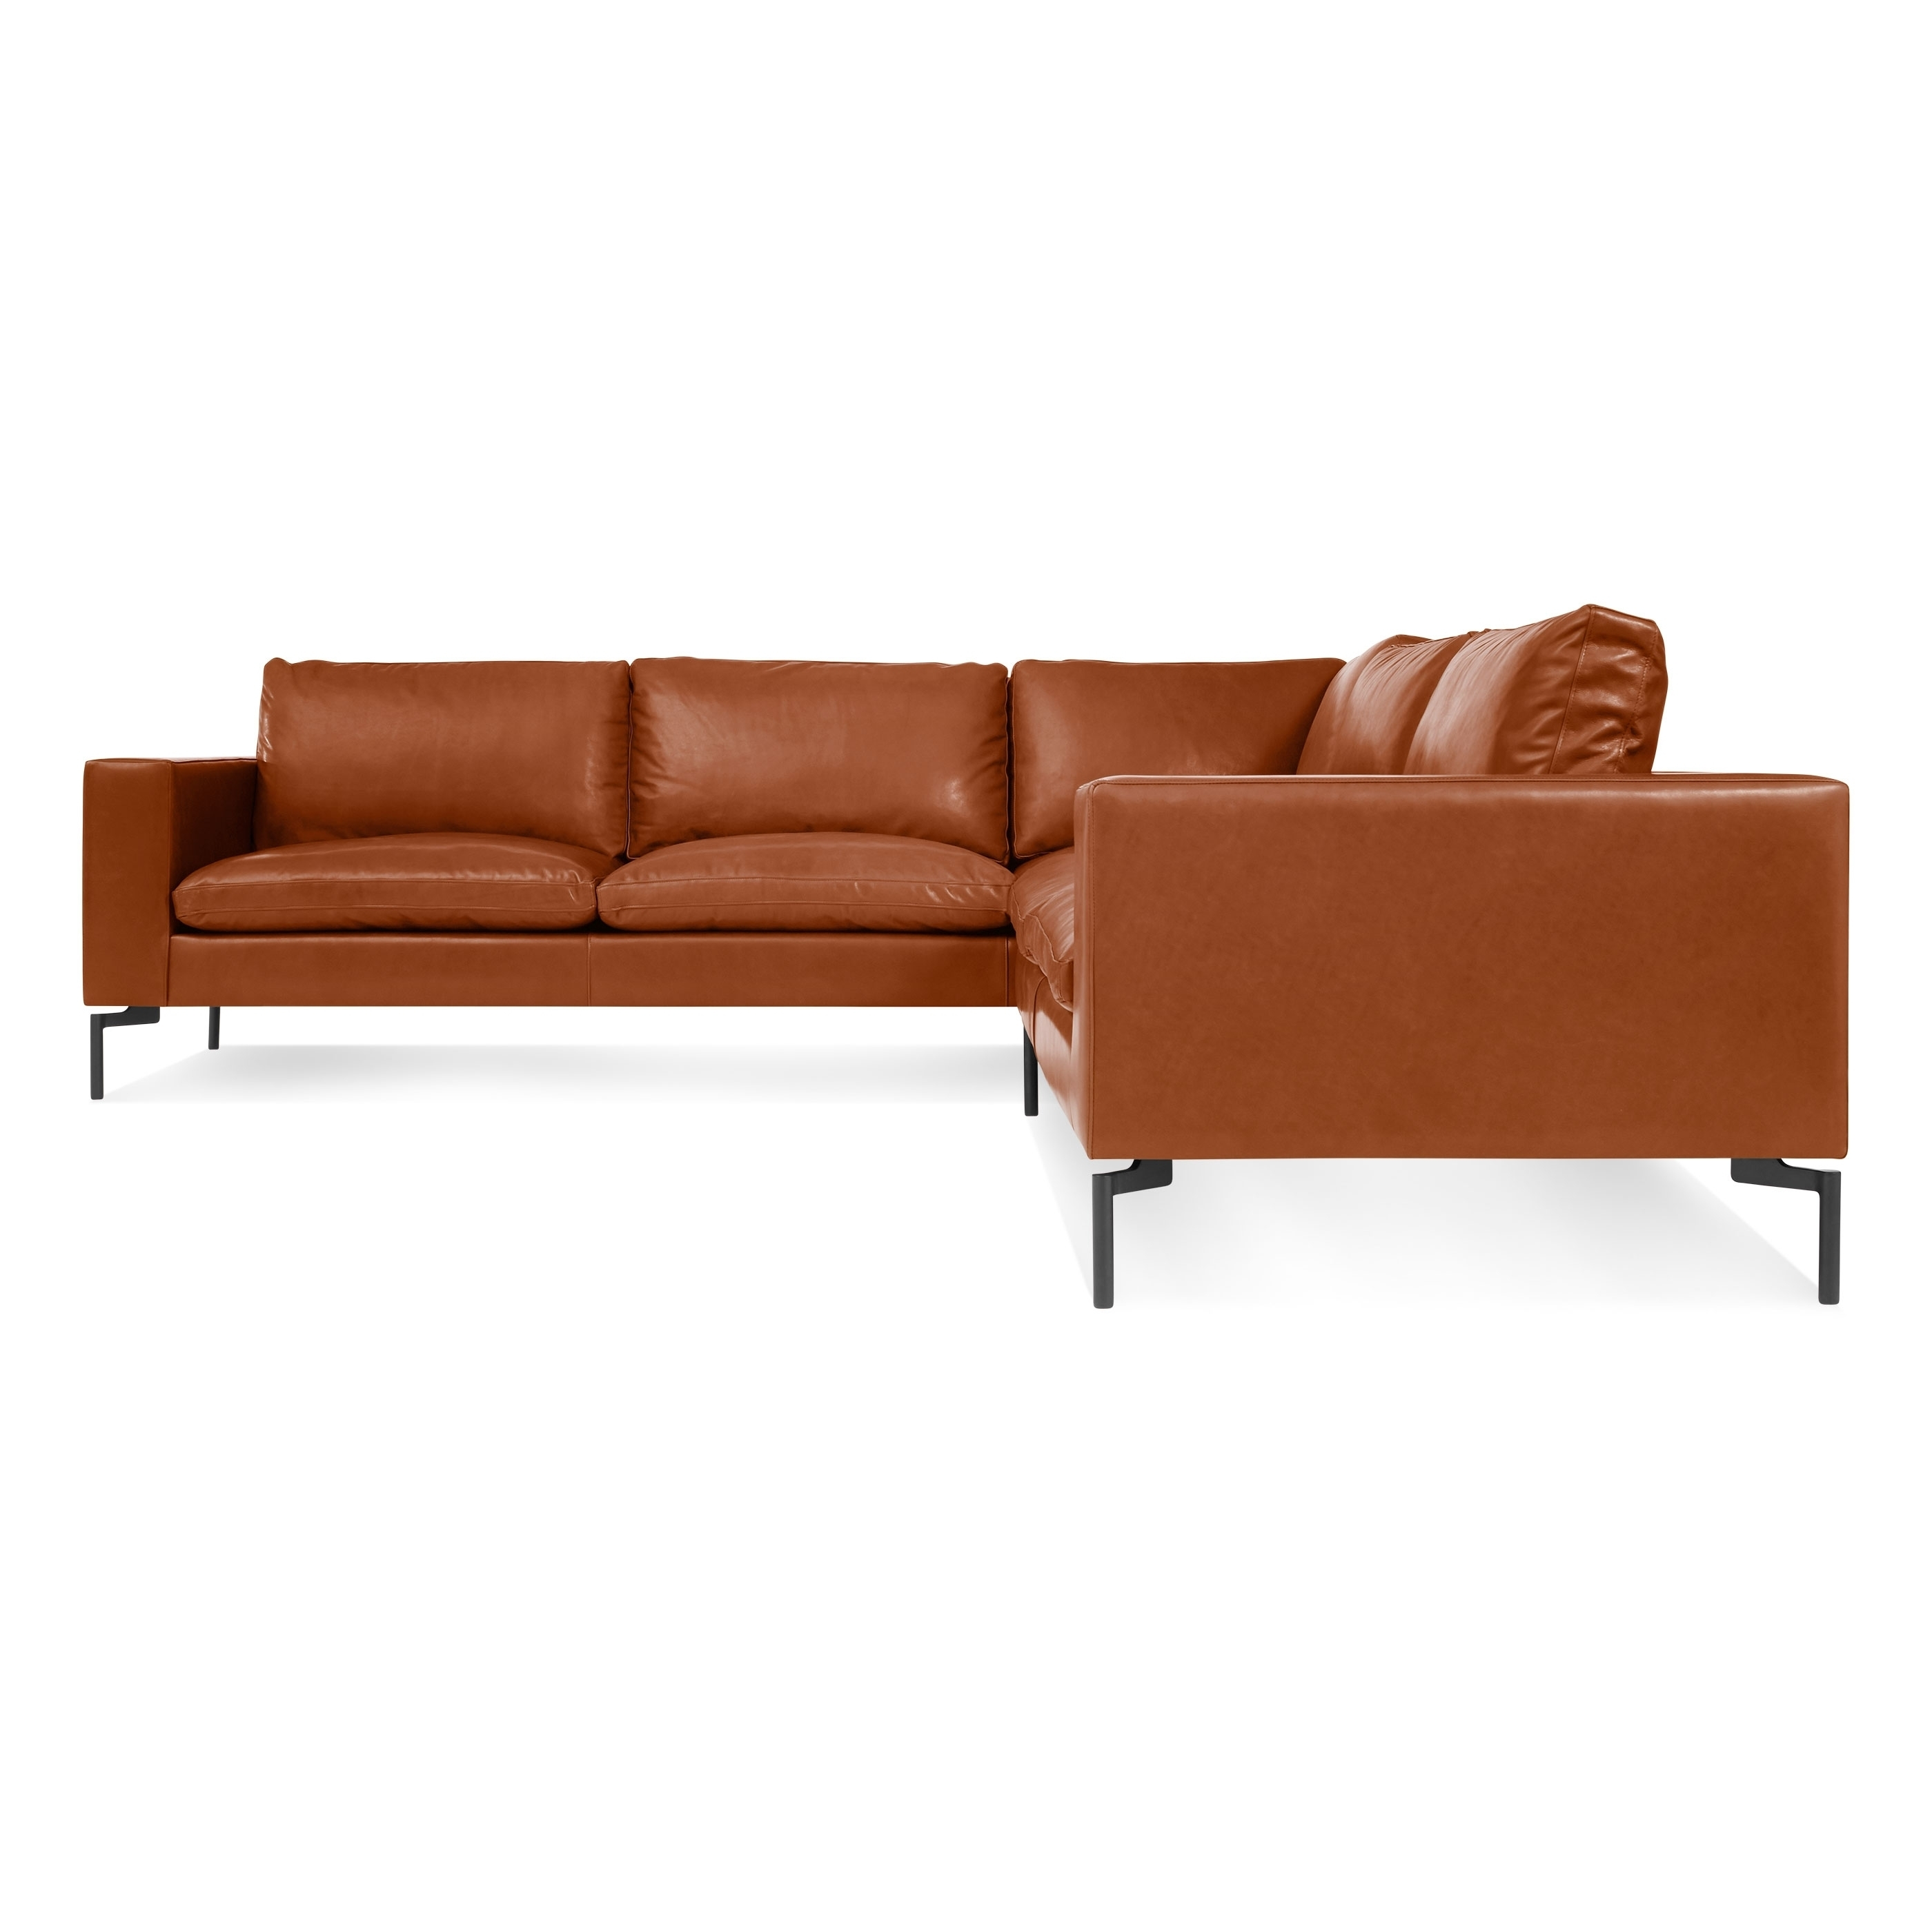 20 Inspirations Of Nova Scotia Sectional Sofas With Nova Scotia Sectional Sofas (Photo 5 of 10)